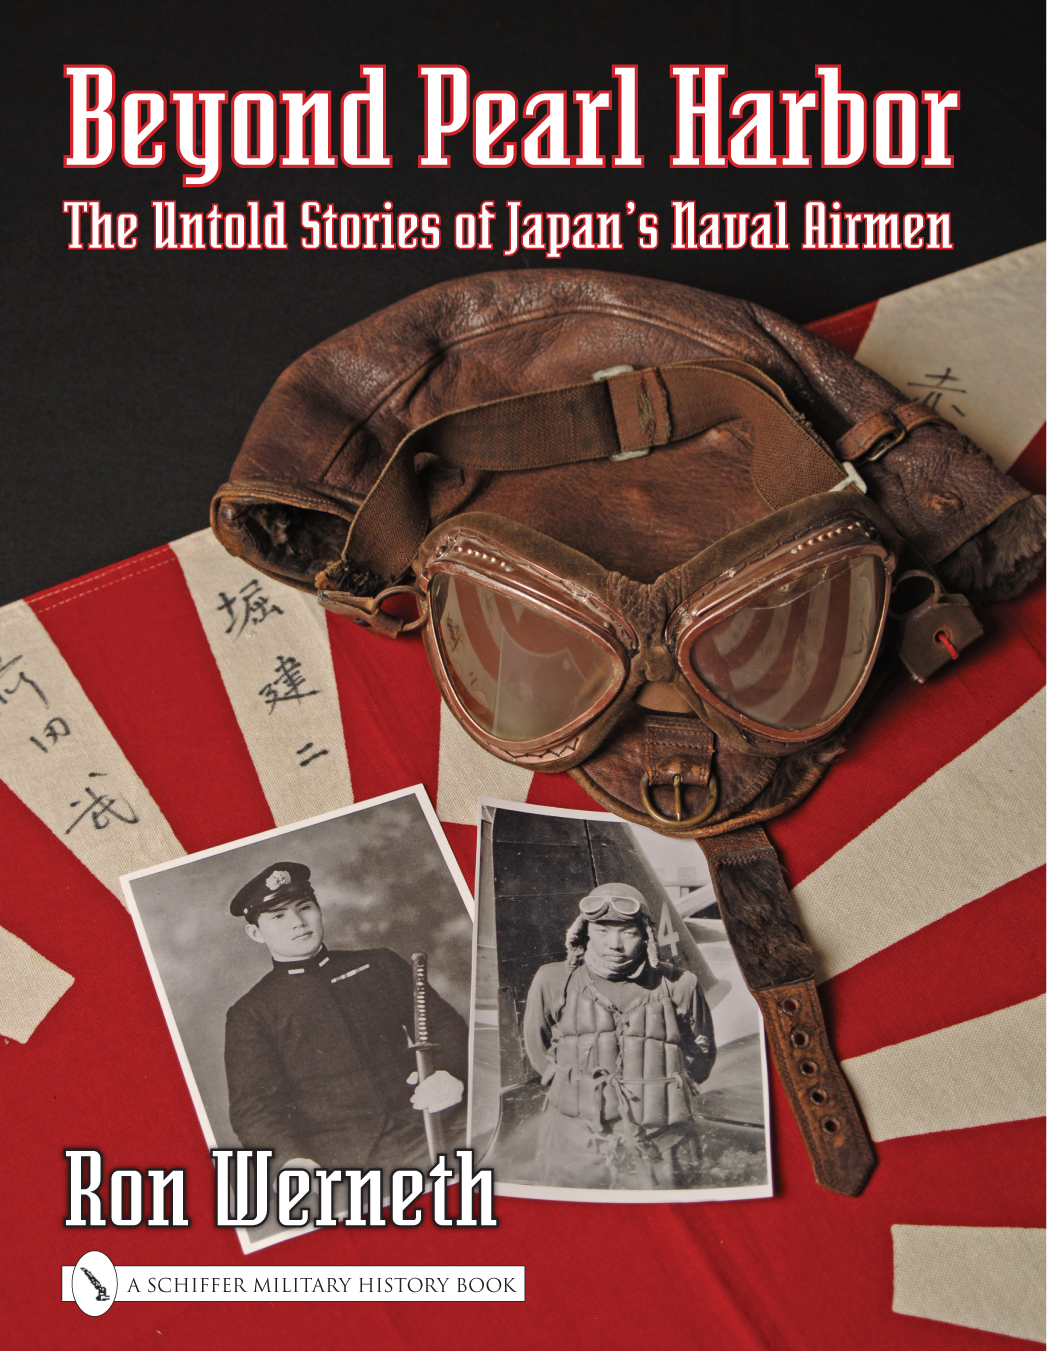 Beyond Pearl Harbor: The Untold Stories of Japan's Naval Airmen